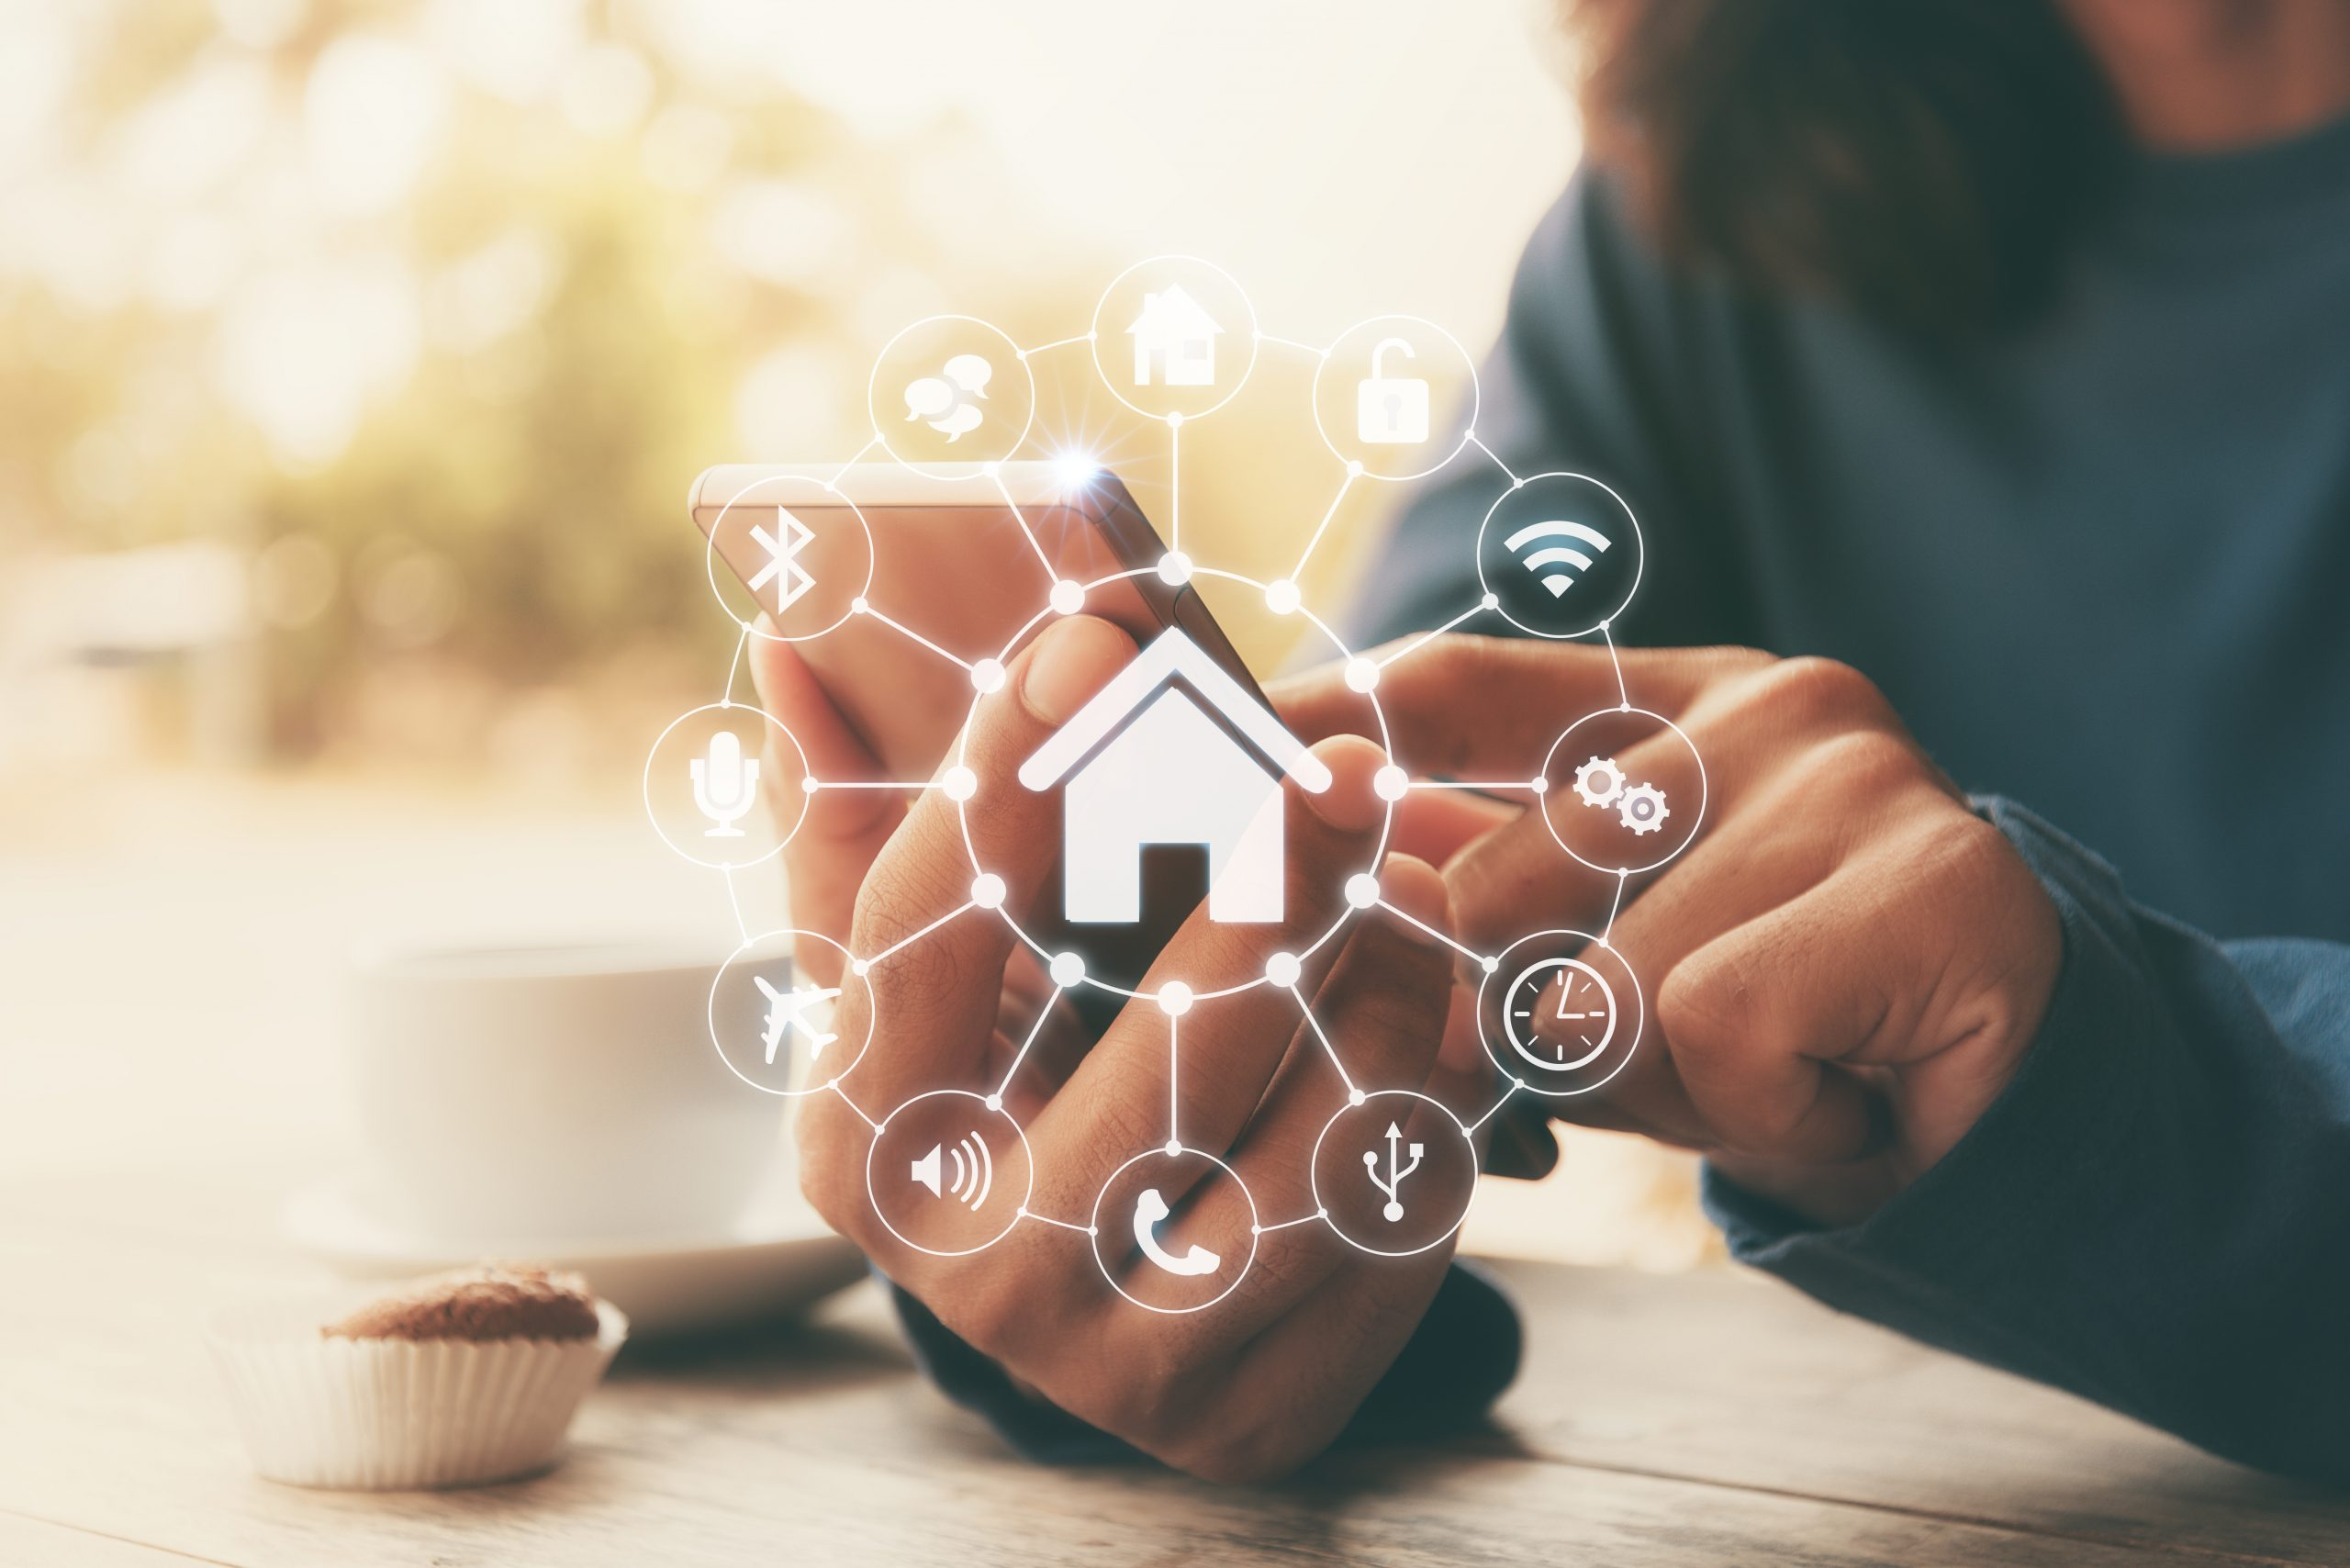 Focused on Residents: Smart Home Tech and Other Features